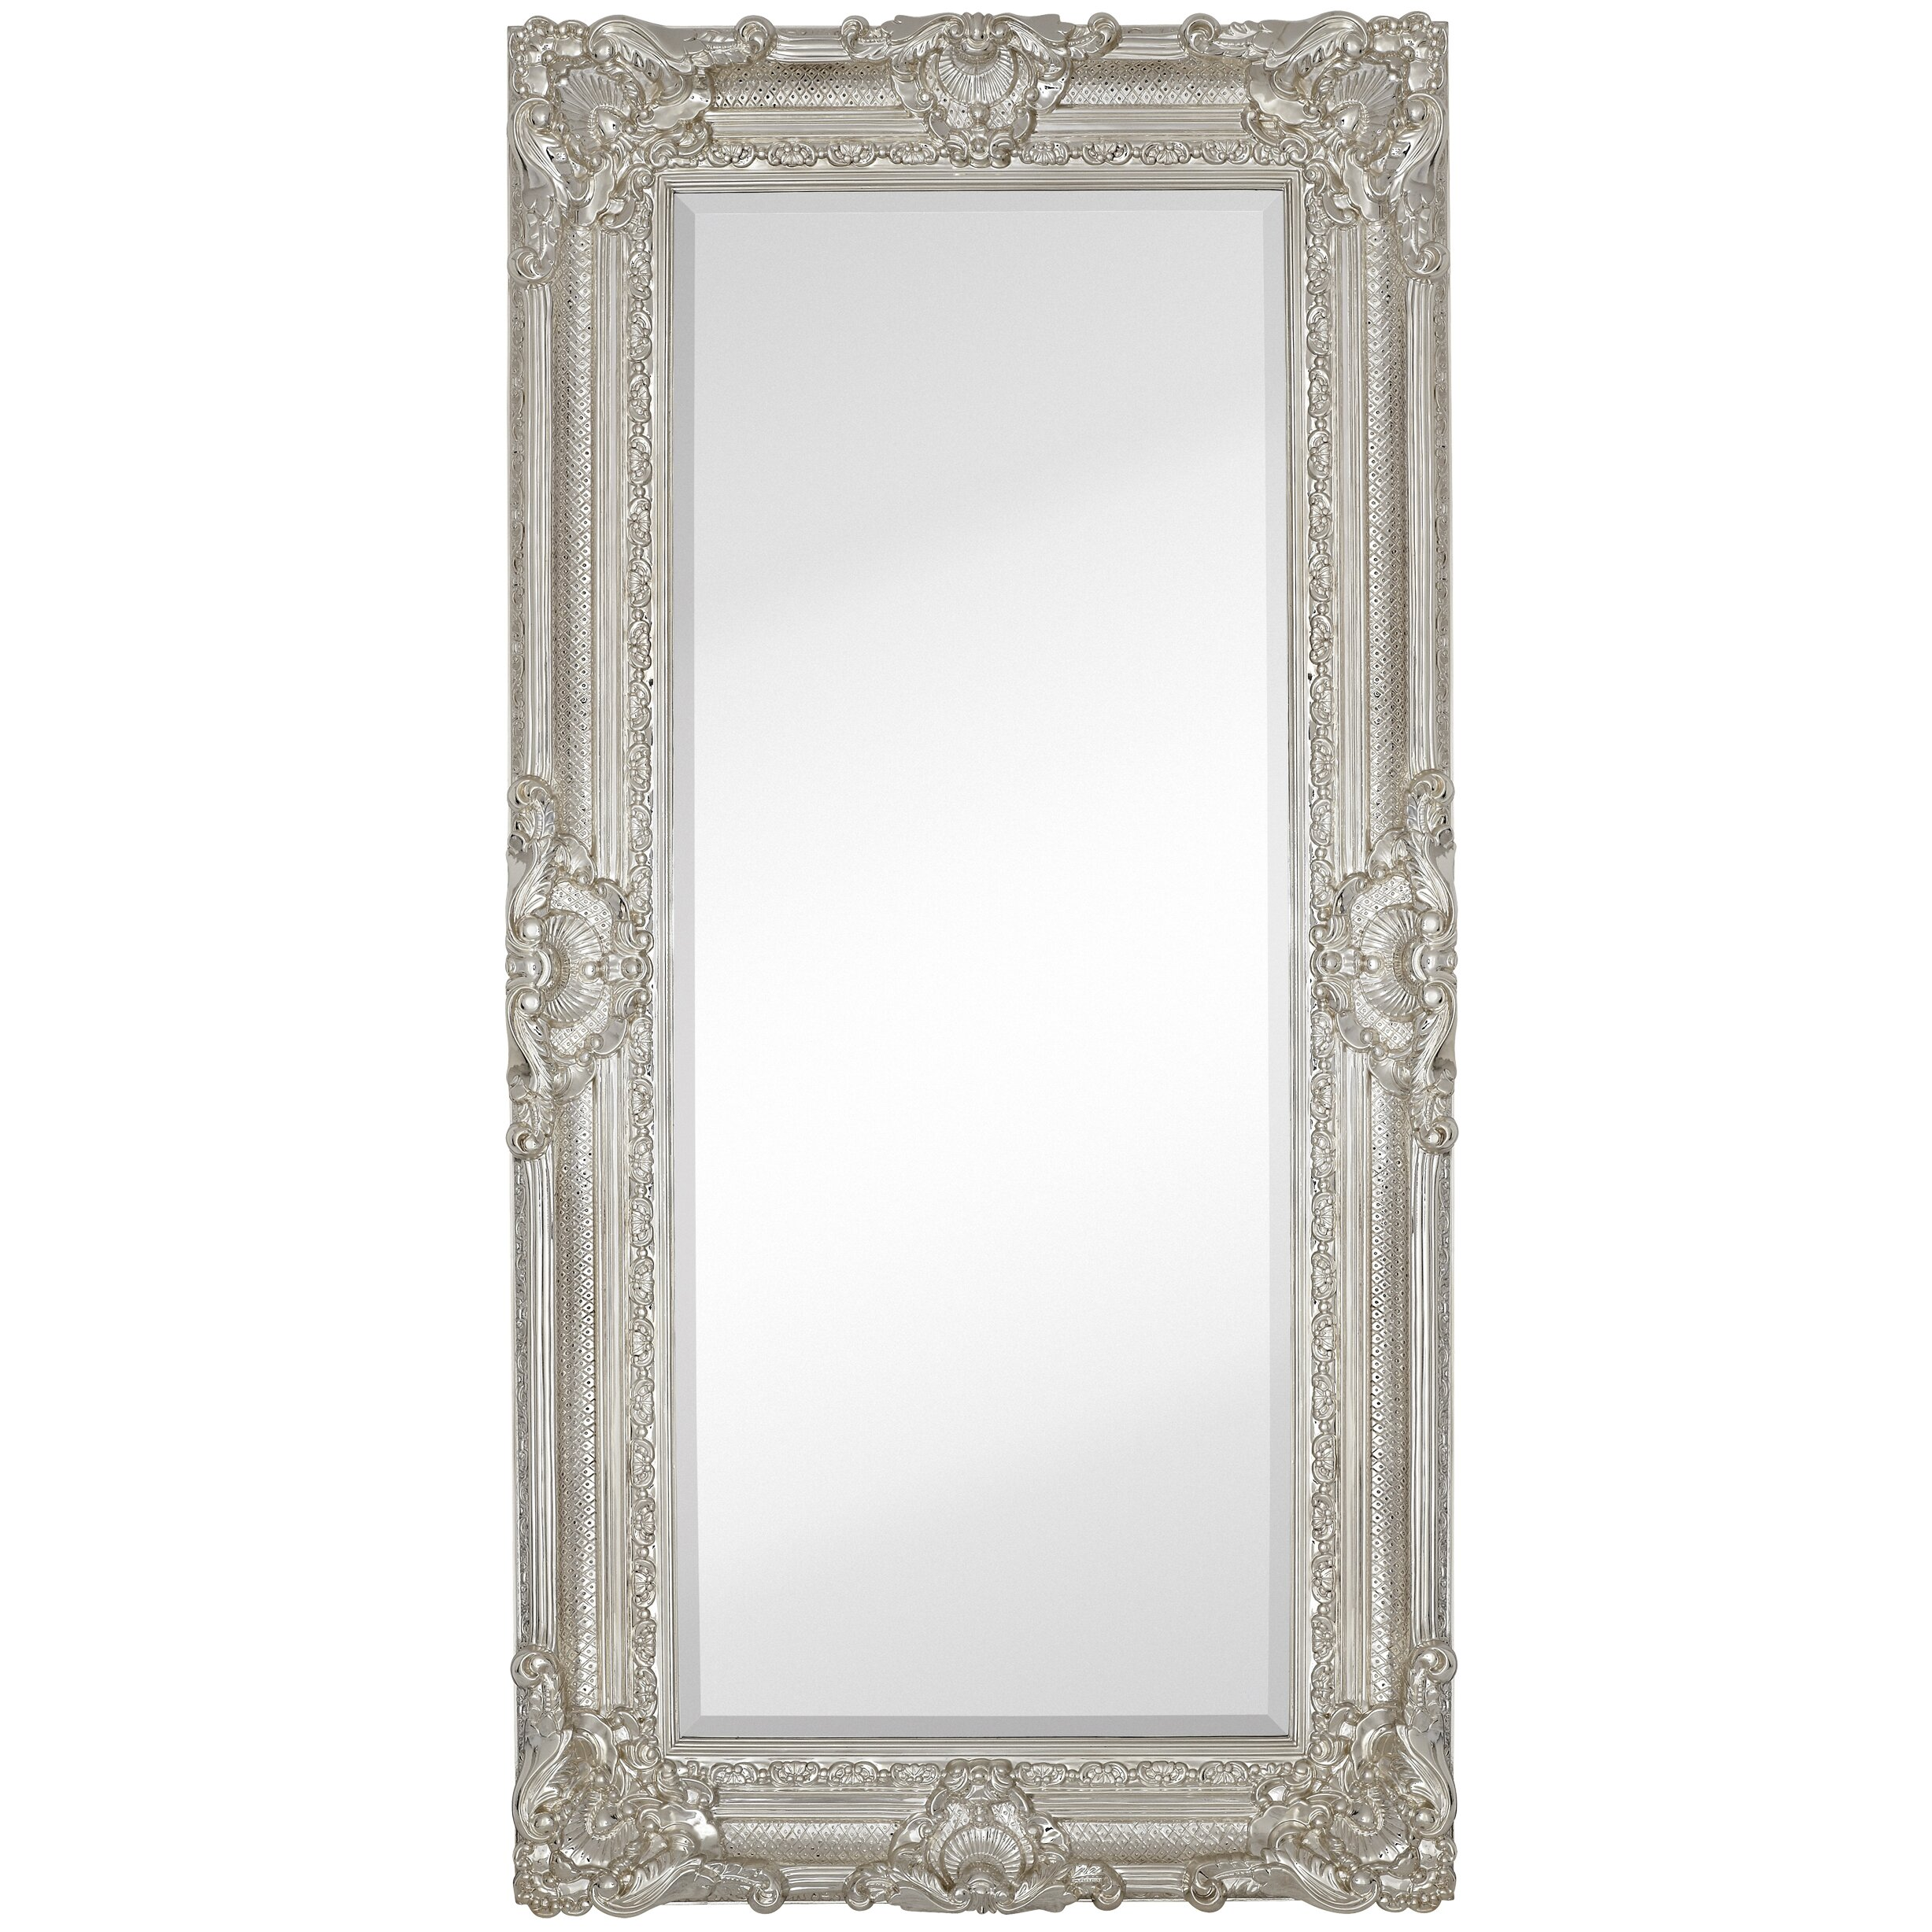 majestic mirror large traditional polished chrome rectangular beveled glass framed wall mirror